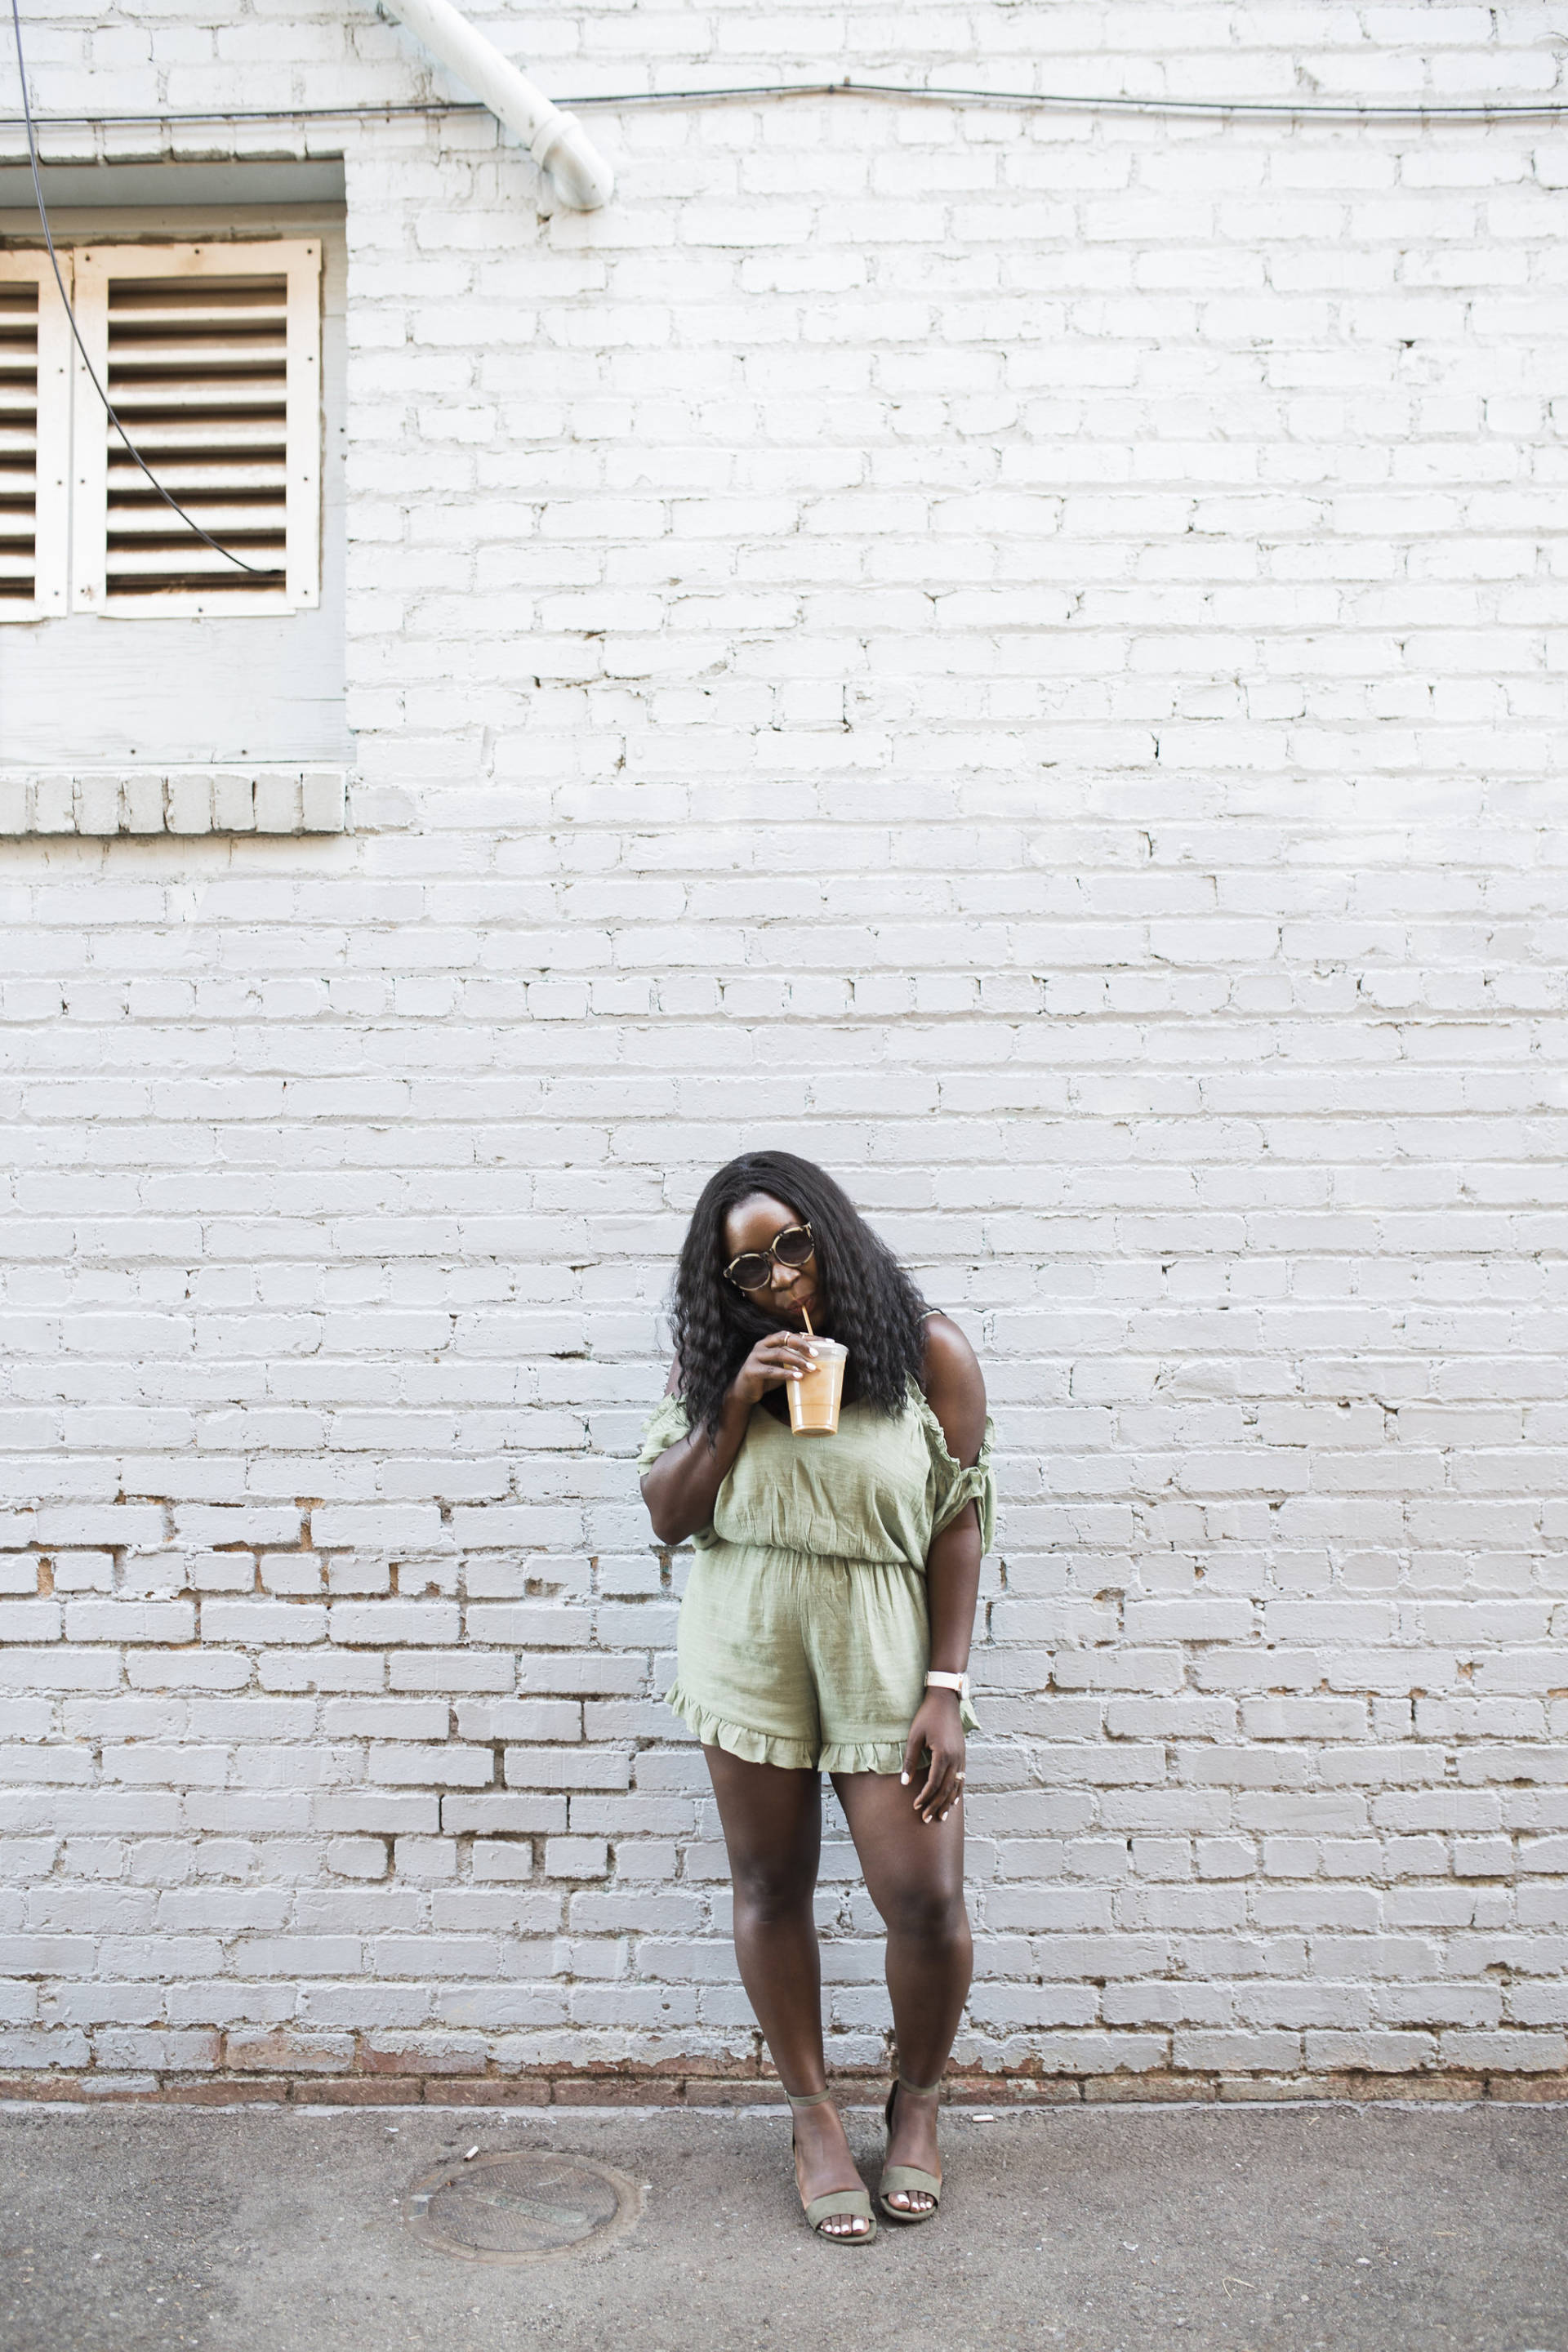 Ruffle Romper + Coffee Date Vol. 4: Life Happenings and Summer Fashion Inspiration